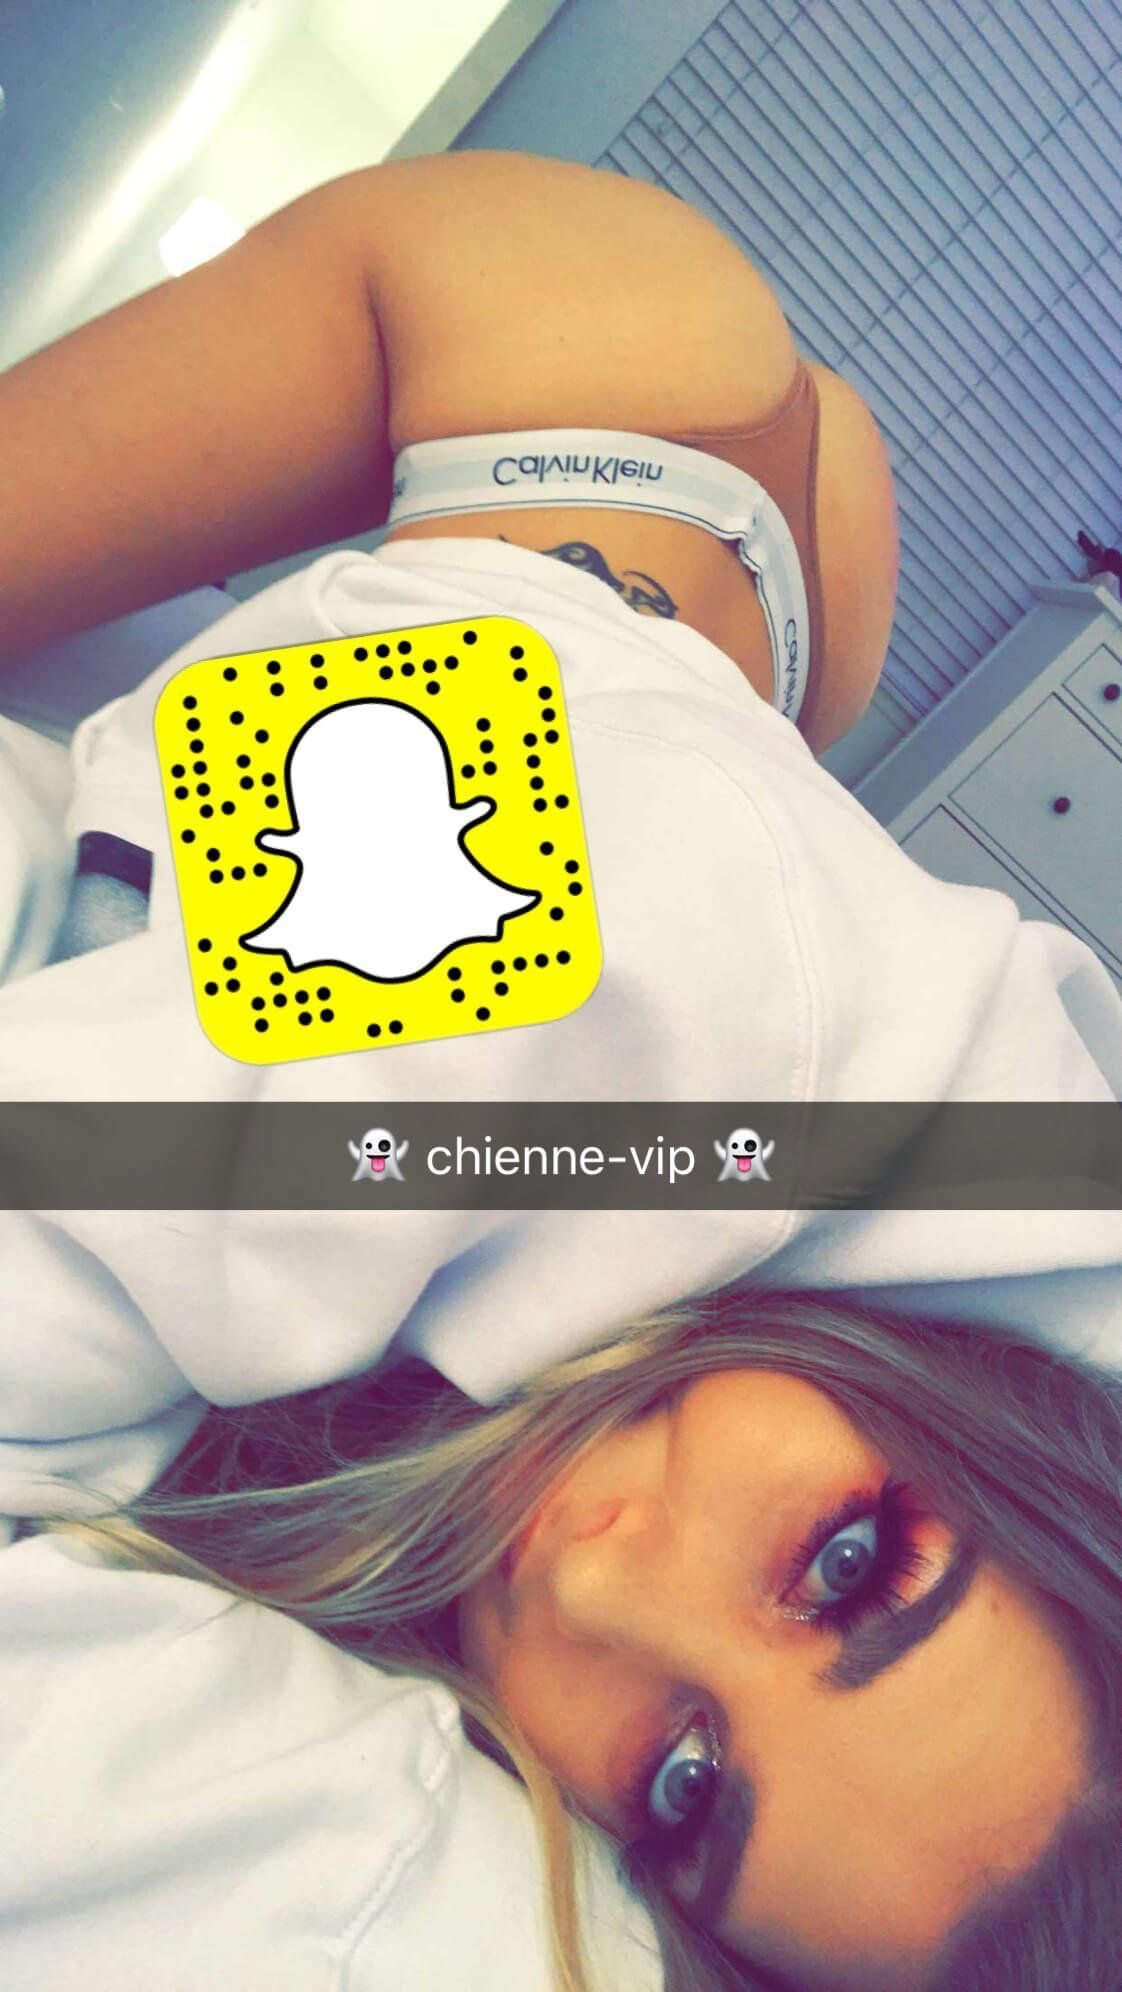 Chienne snap